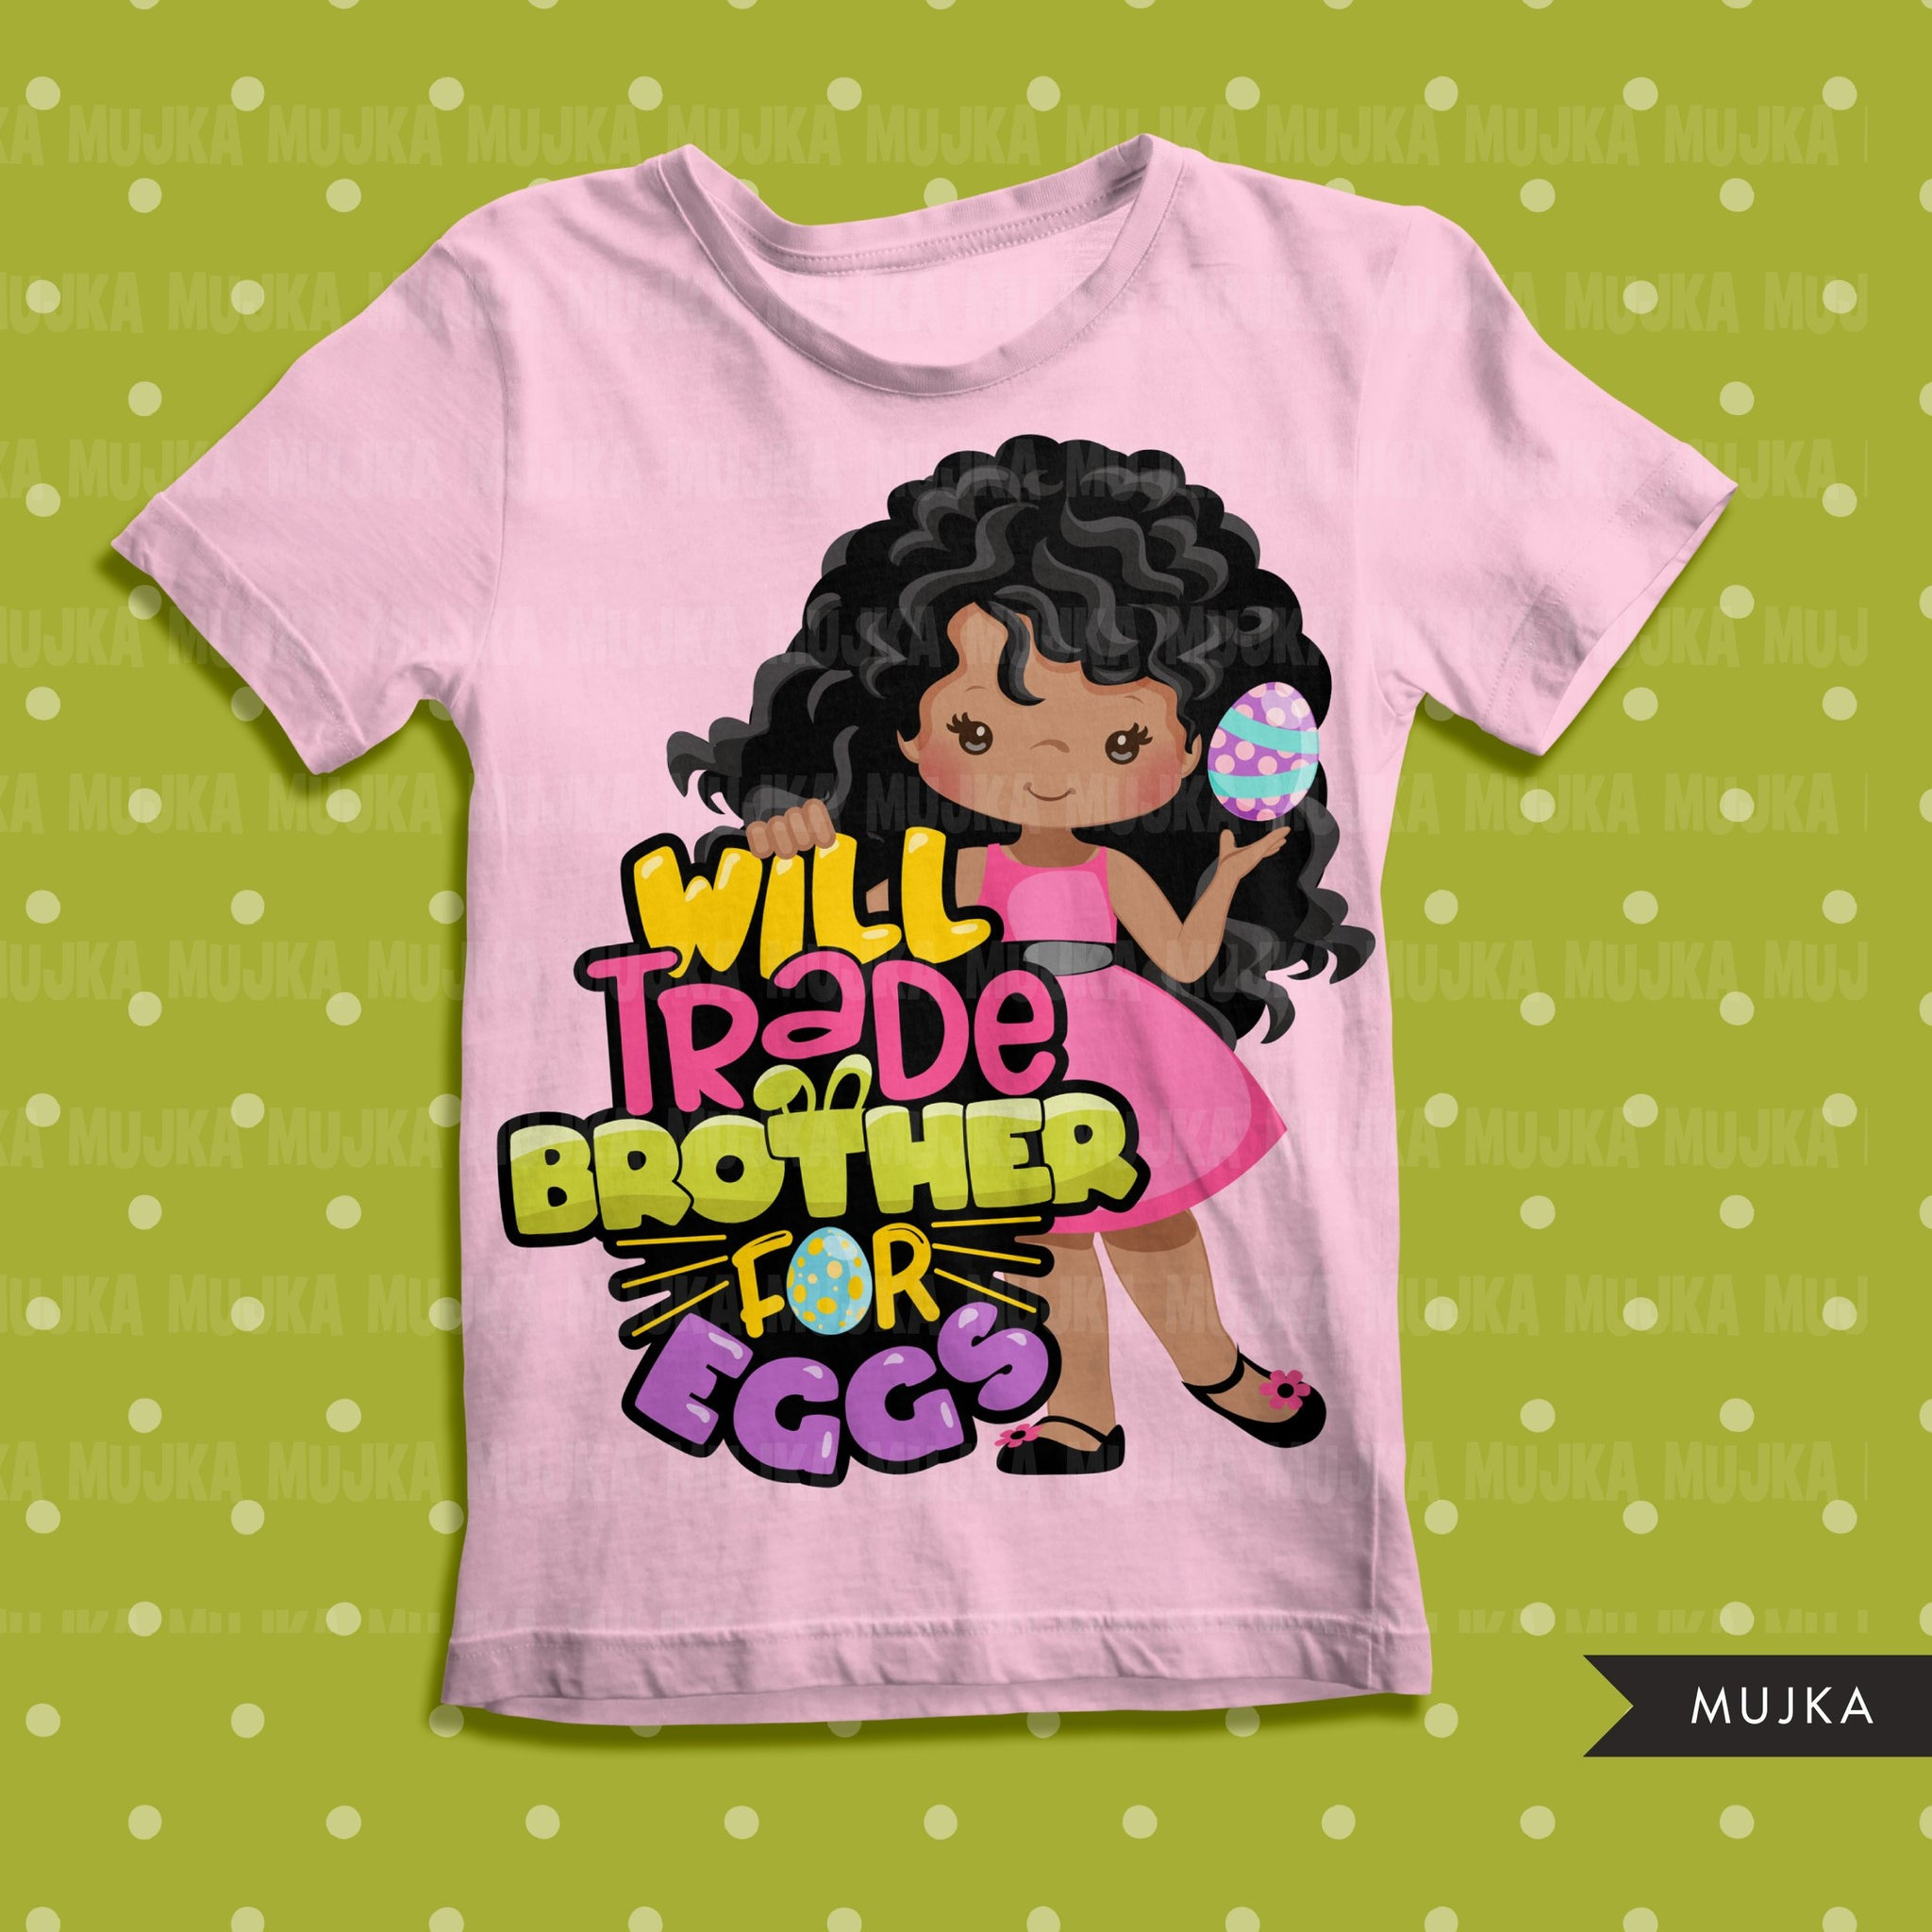 Easter PNG digital, Will trade brother for eggs Printable HTV sublimation image transfer clipart, t-shirt afro black girl graphics